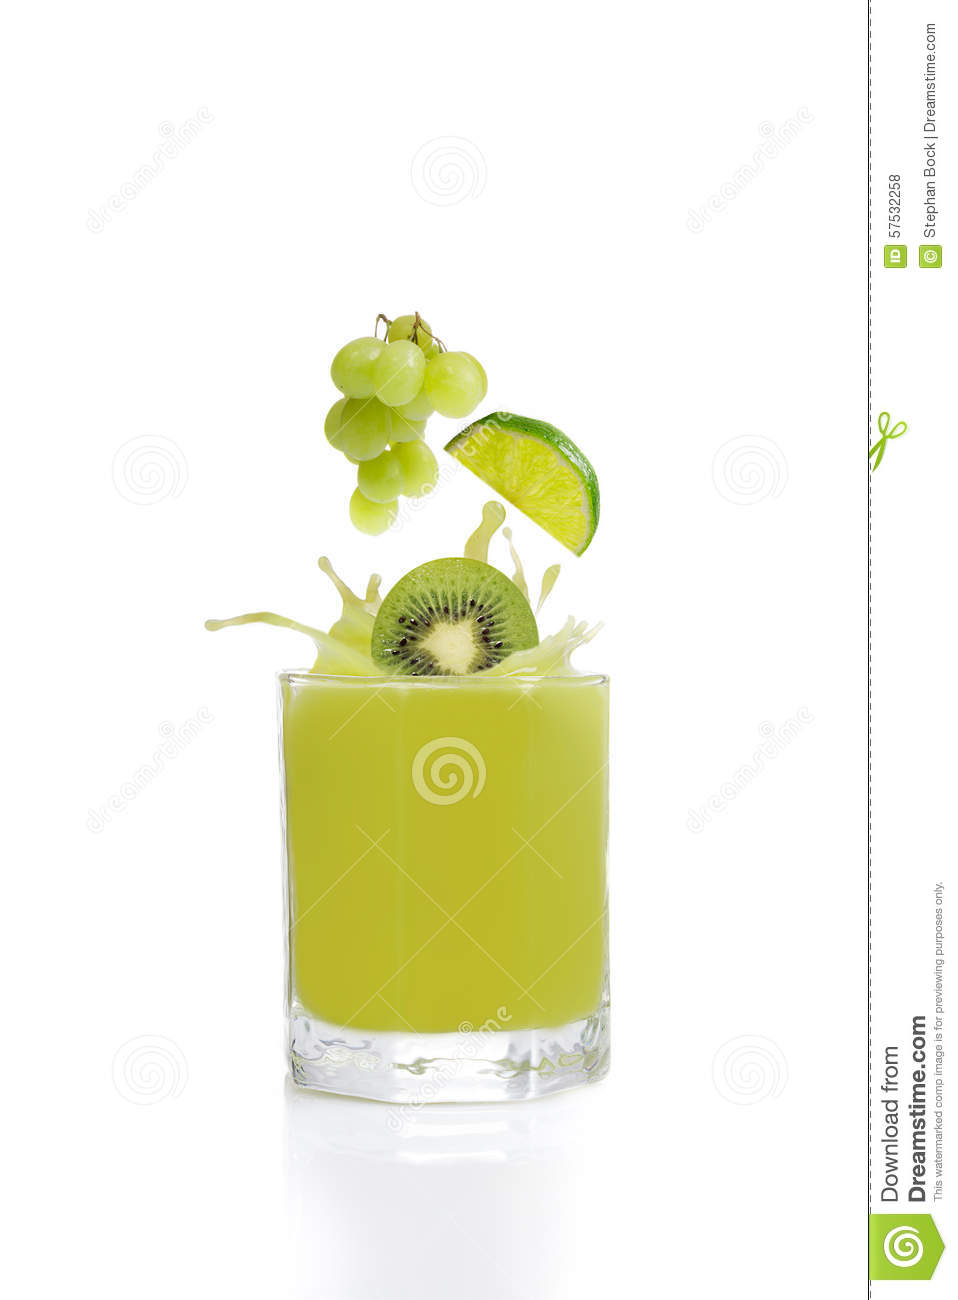 Green fruit juice from kiwis, lime and grapes